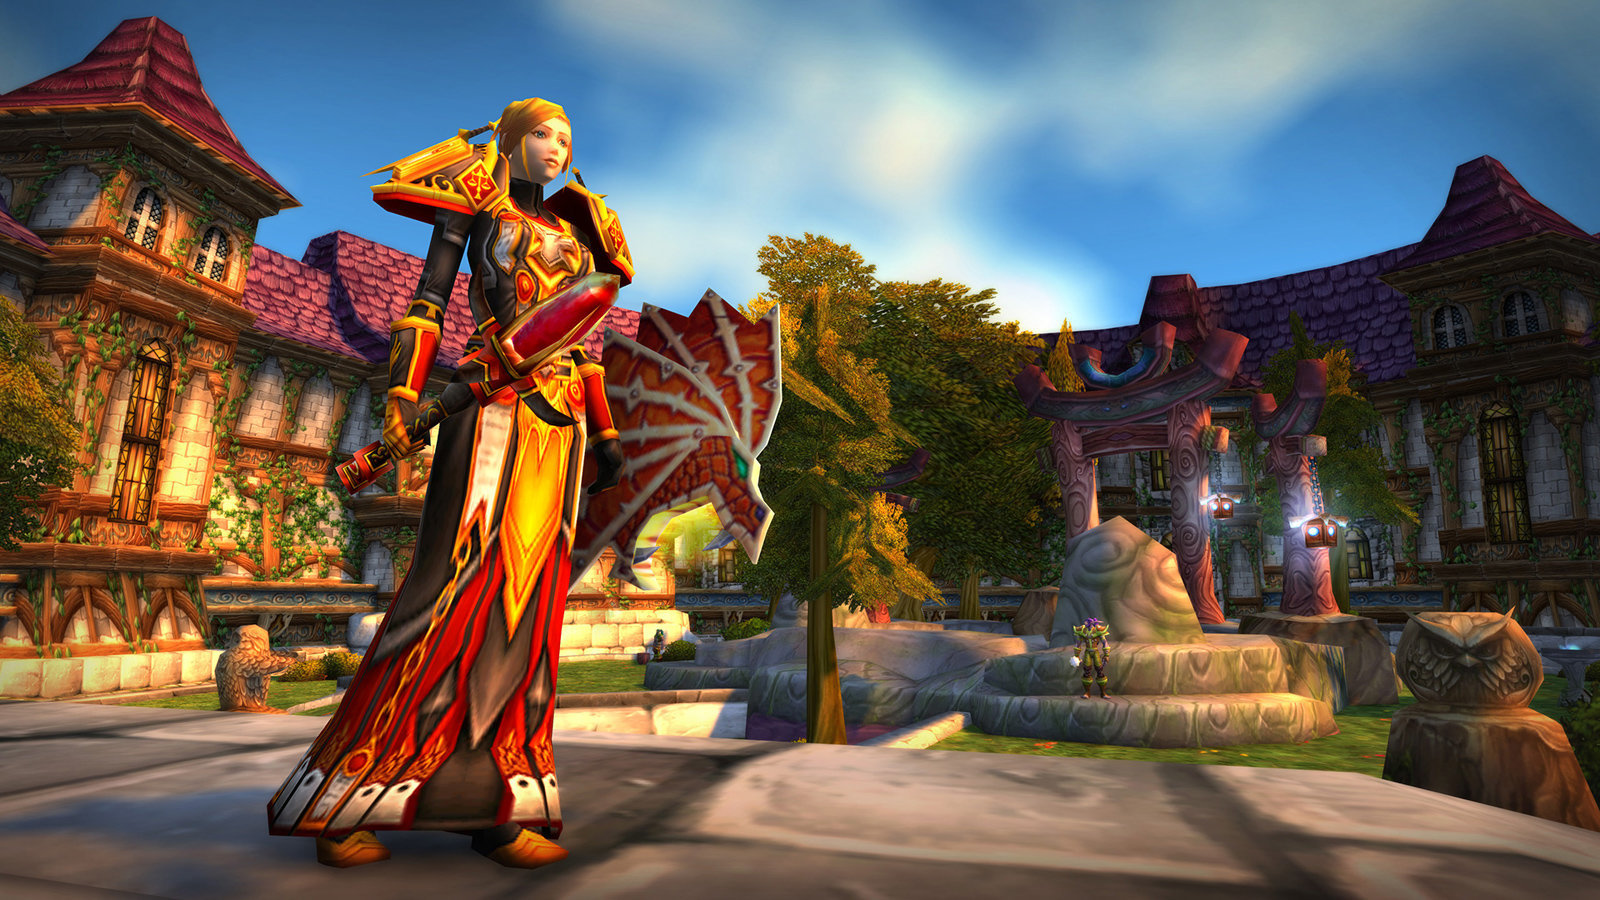 Blizzard Explains Why Its Banning So Many WoW Classic Players